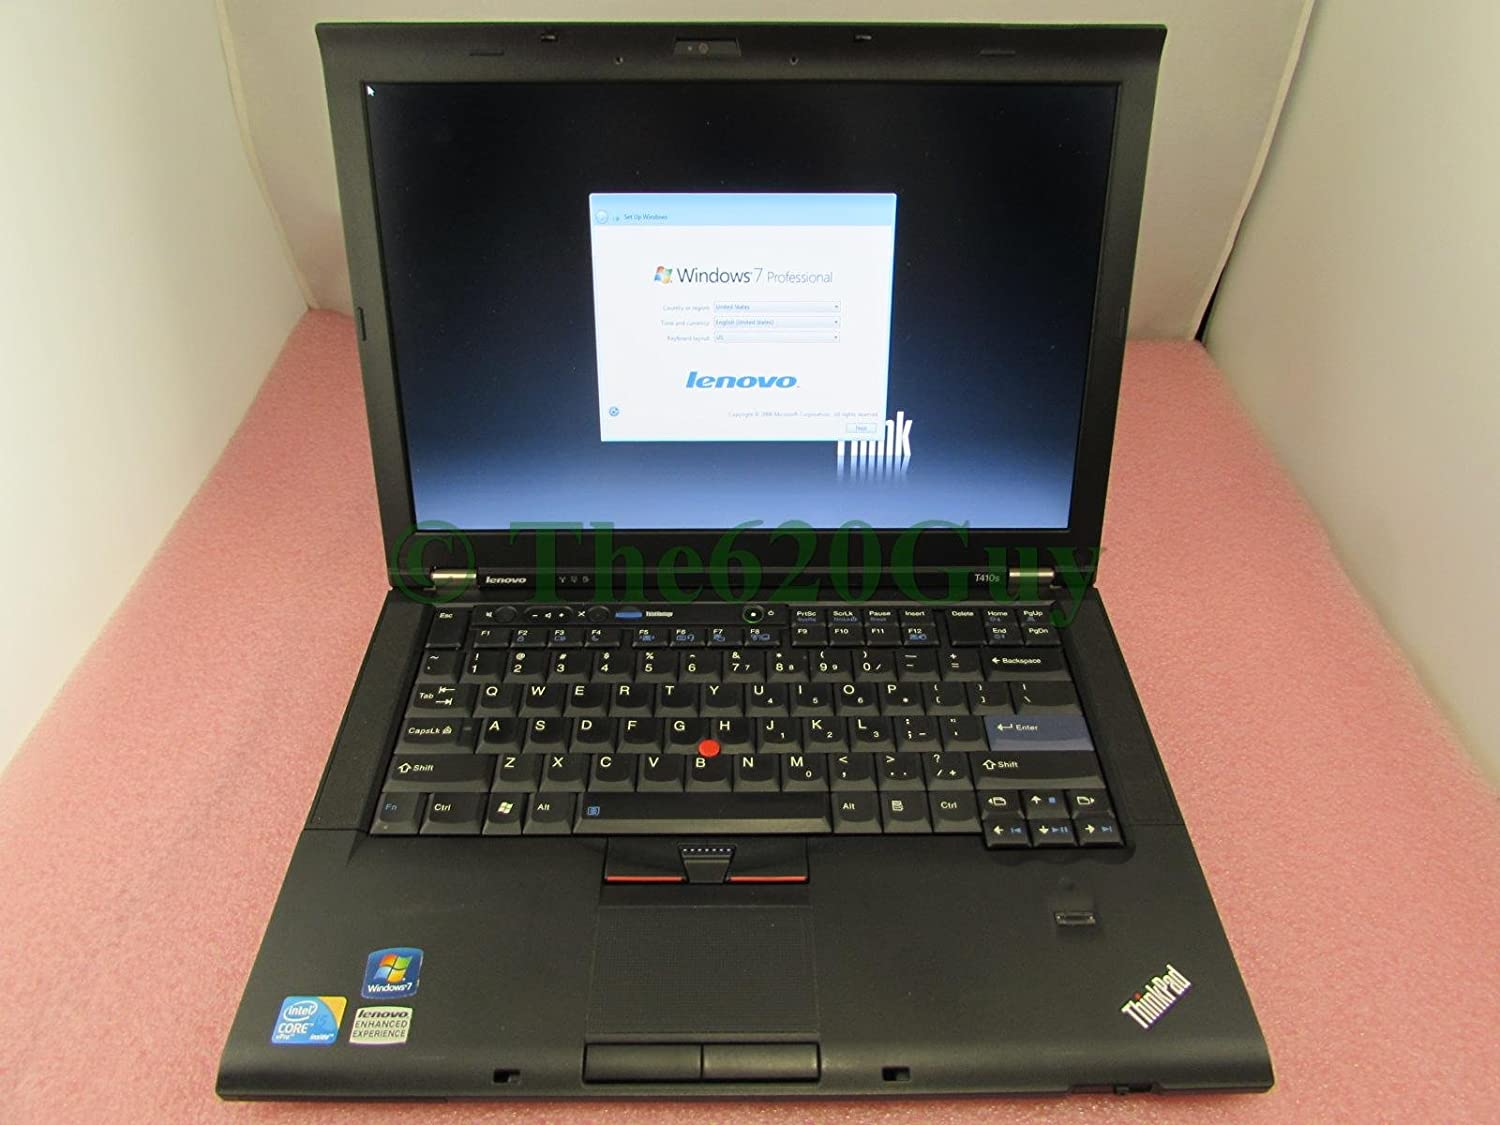 Lenovo ThinkPad T410s Laptop 14.1 Core i5 2.4GHz 128GB SSD 4GB DVDRW NVIDIA Thin